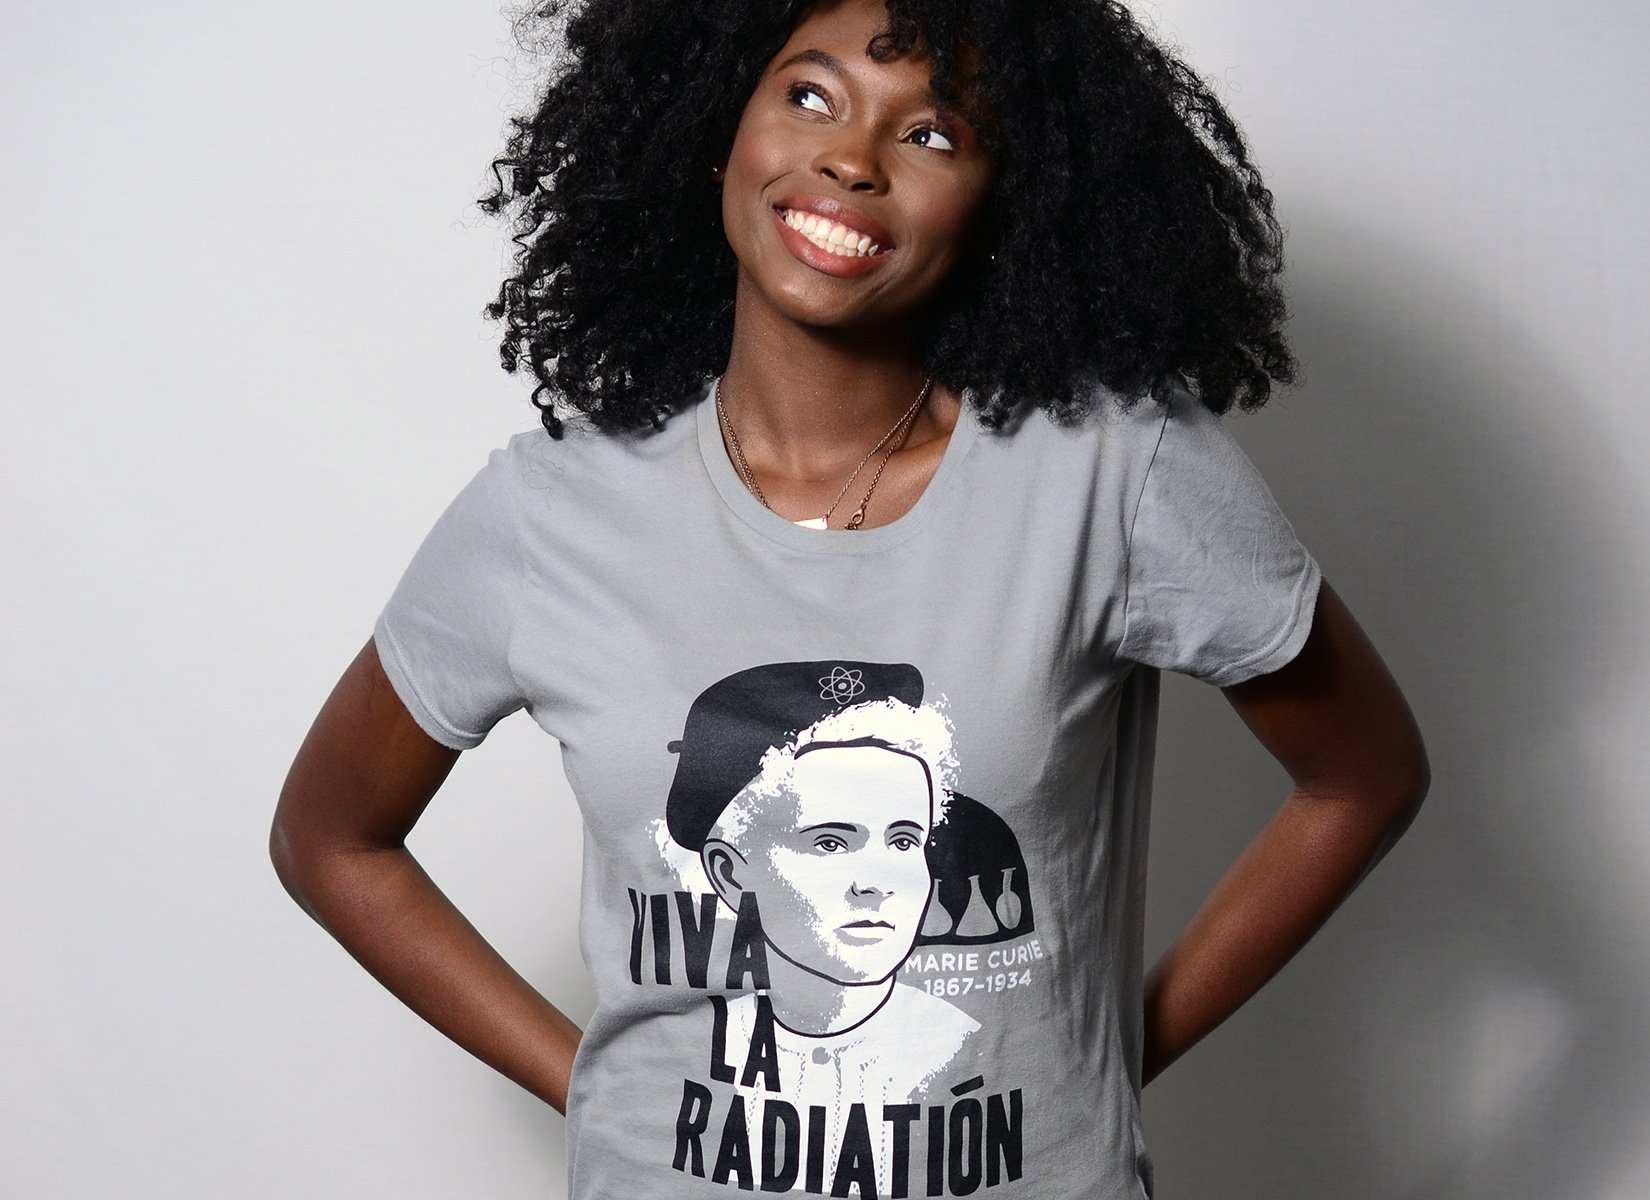 Viva La Radiation on Womens T-Shirt